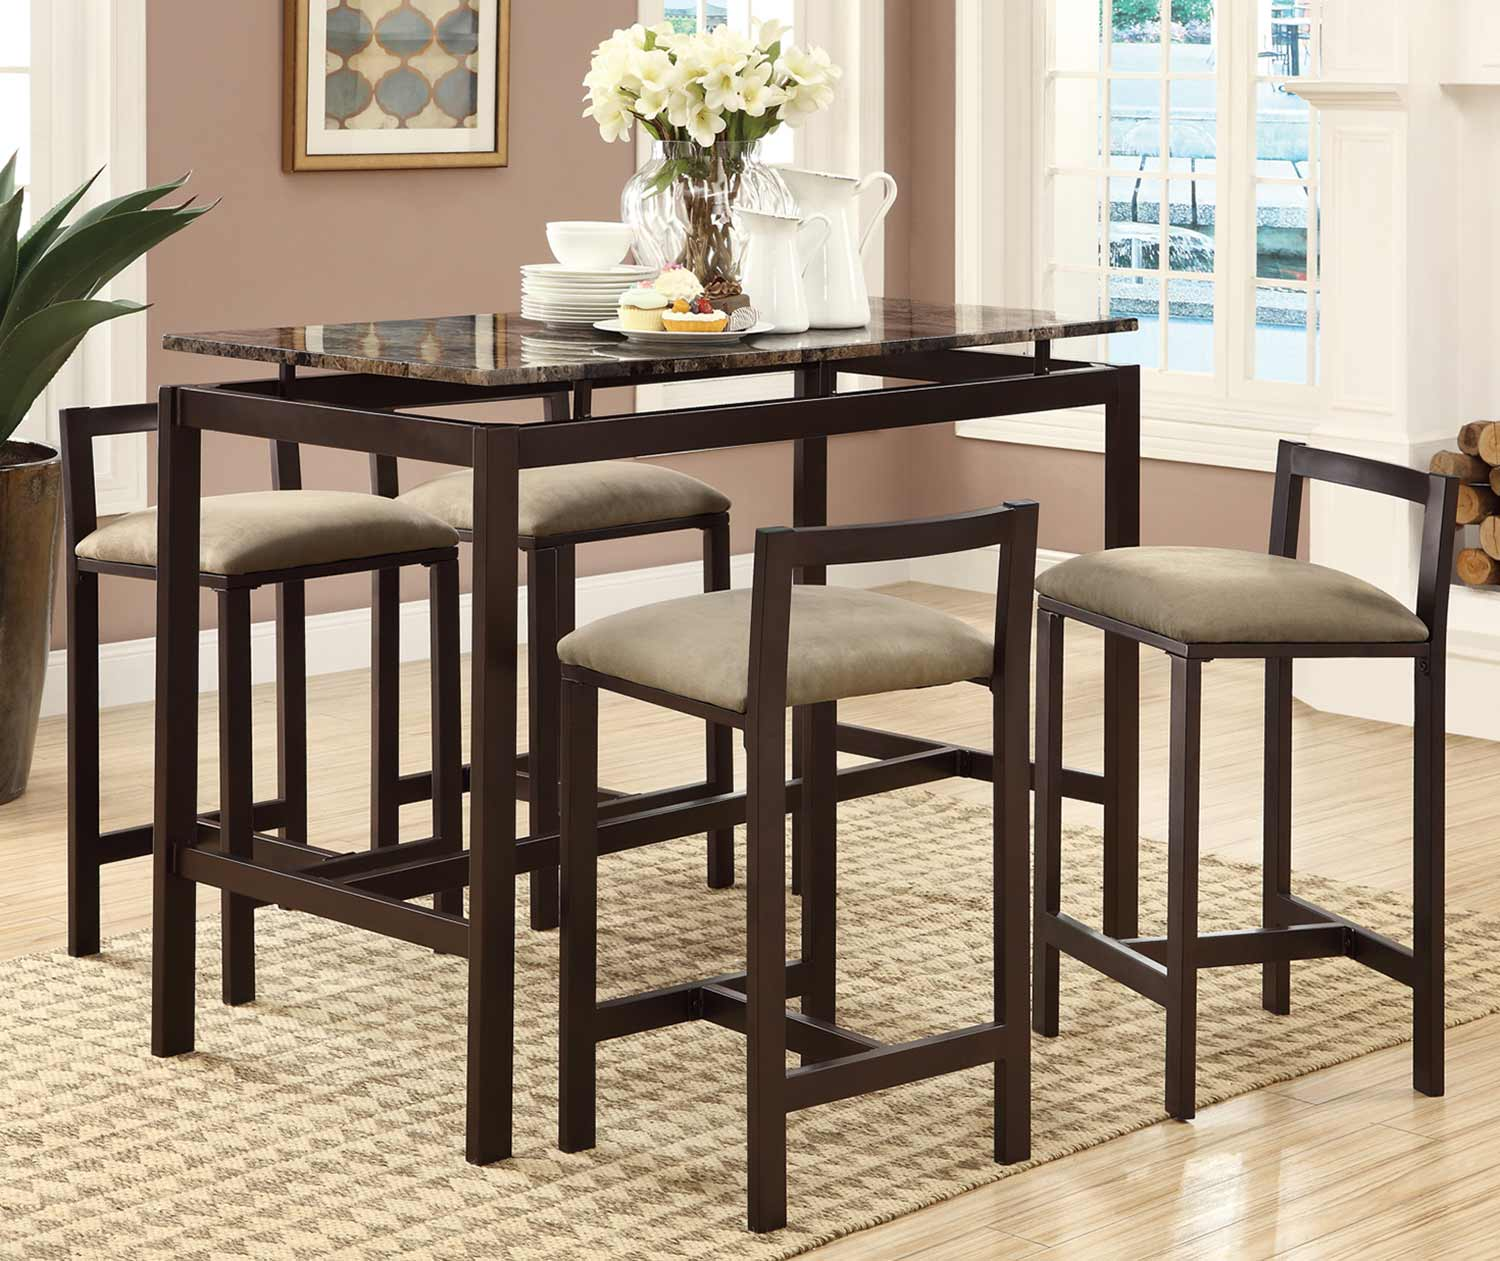 Coaster Dinettes 5 Piece Bar Stool Set Brown 120575 At